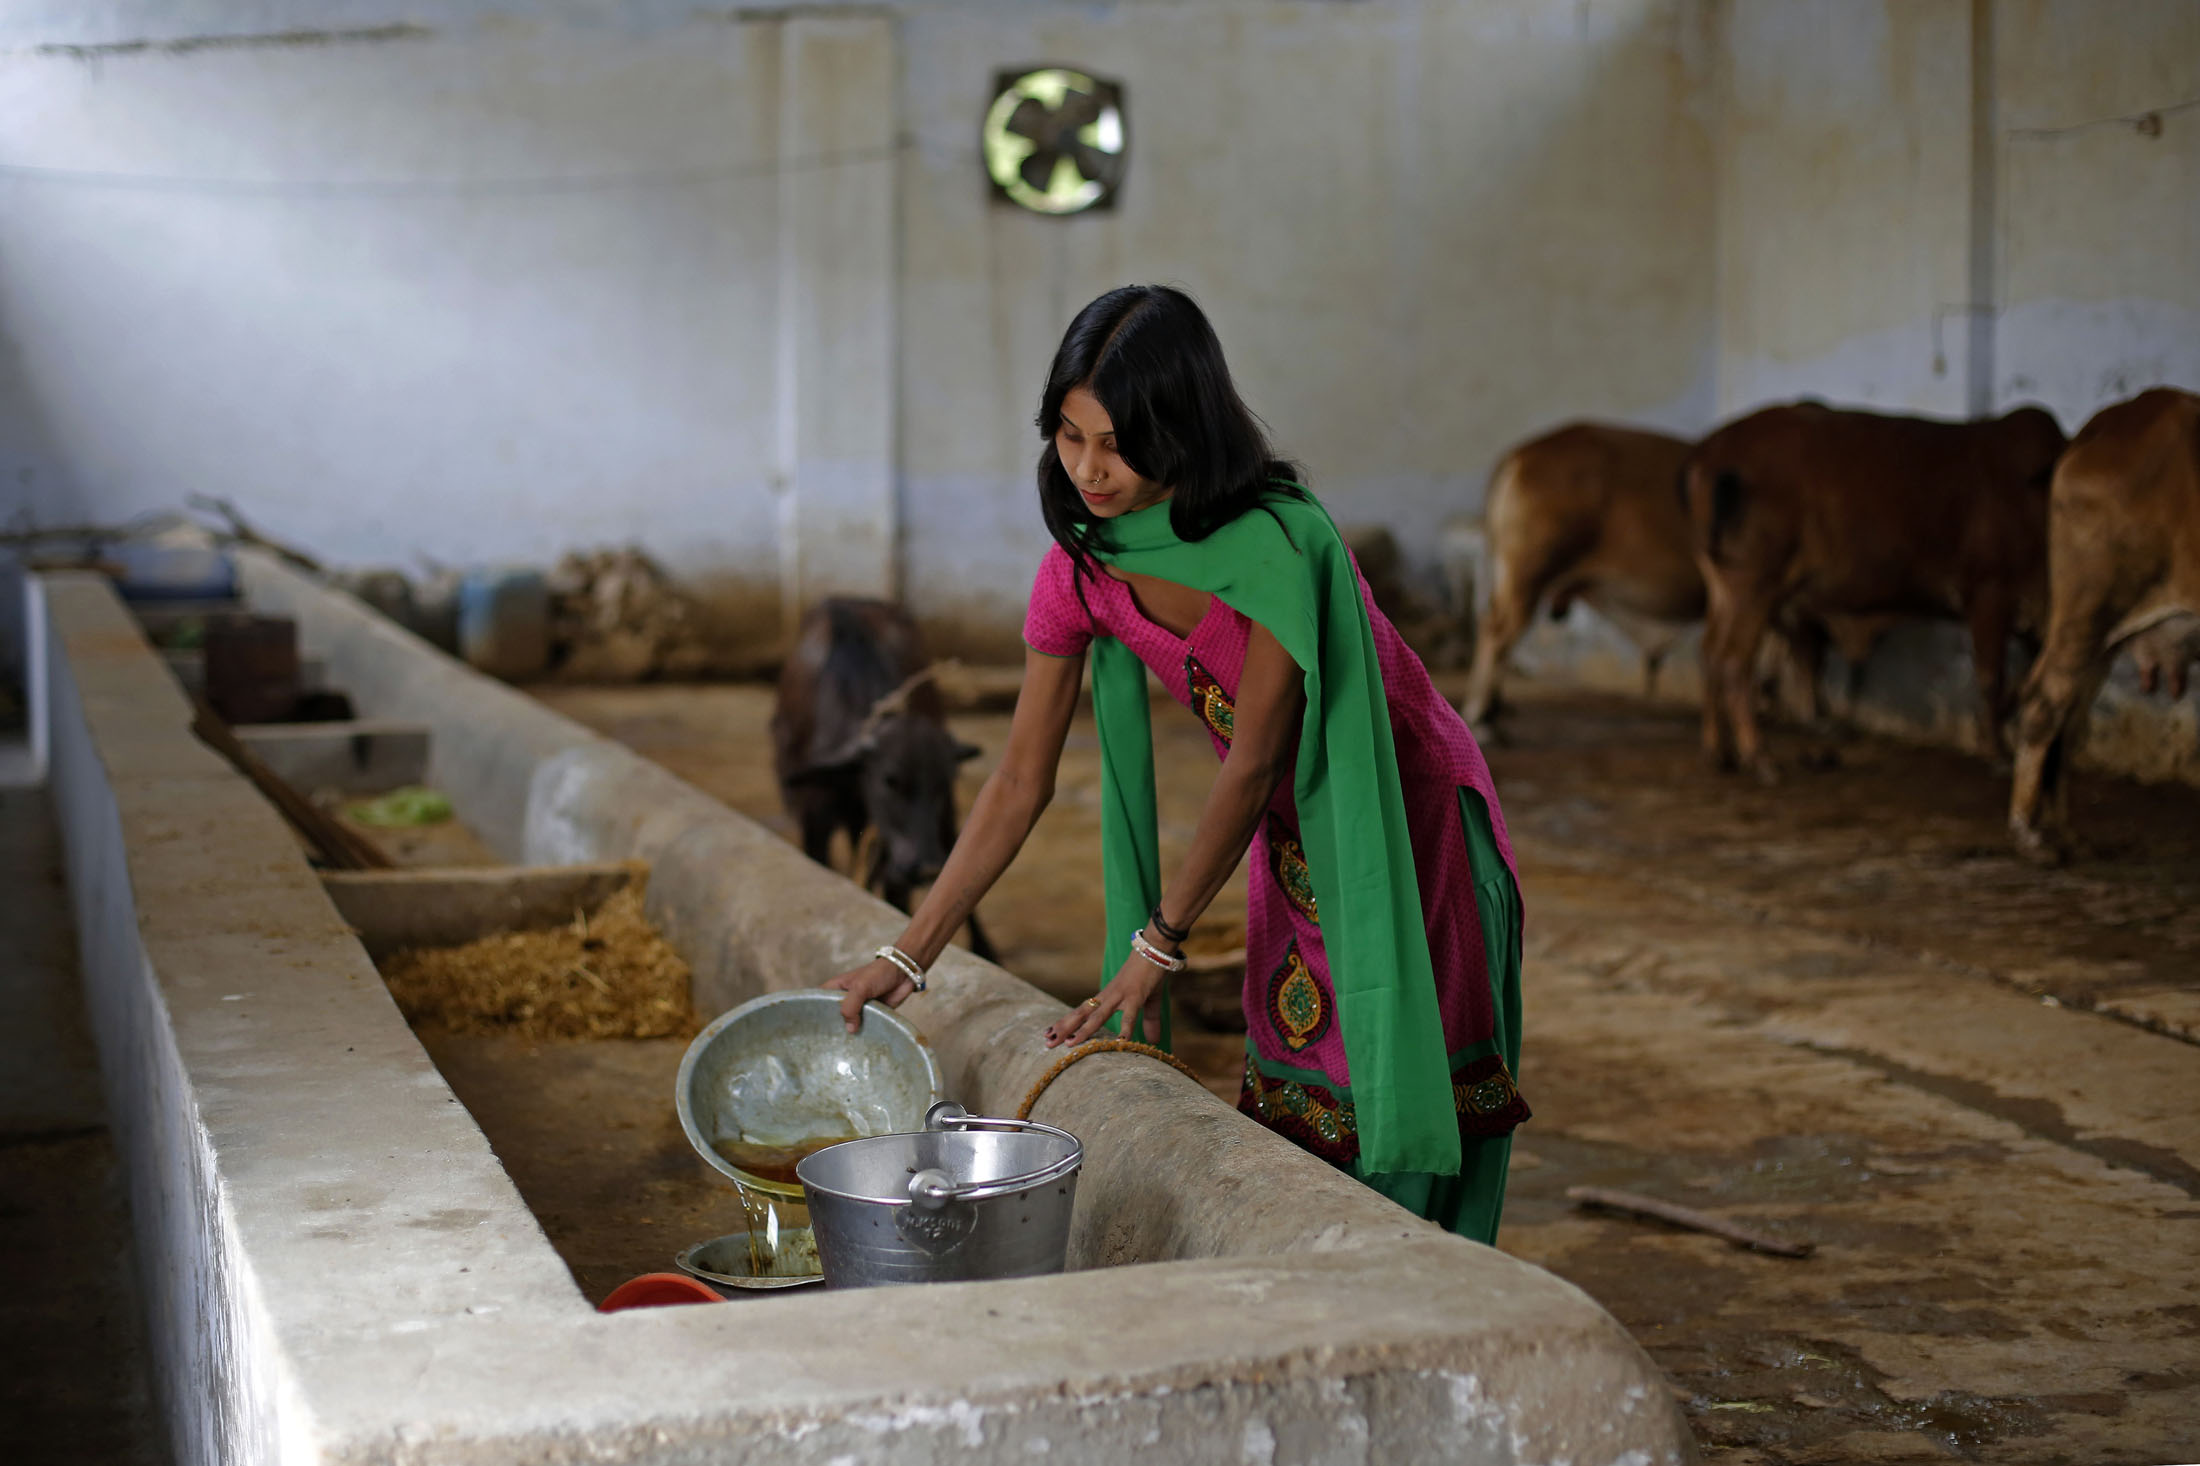 Cow urine can sell for more than milk in India